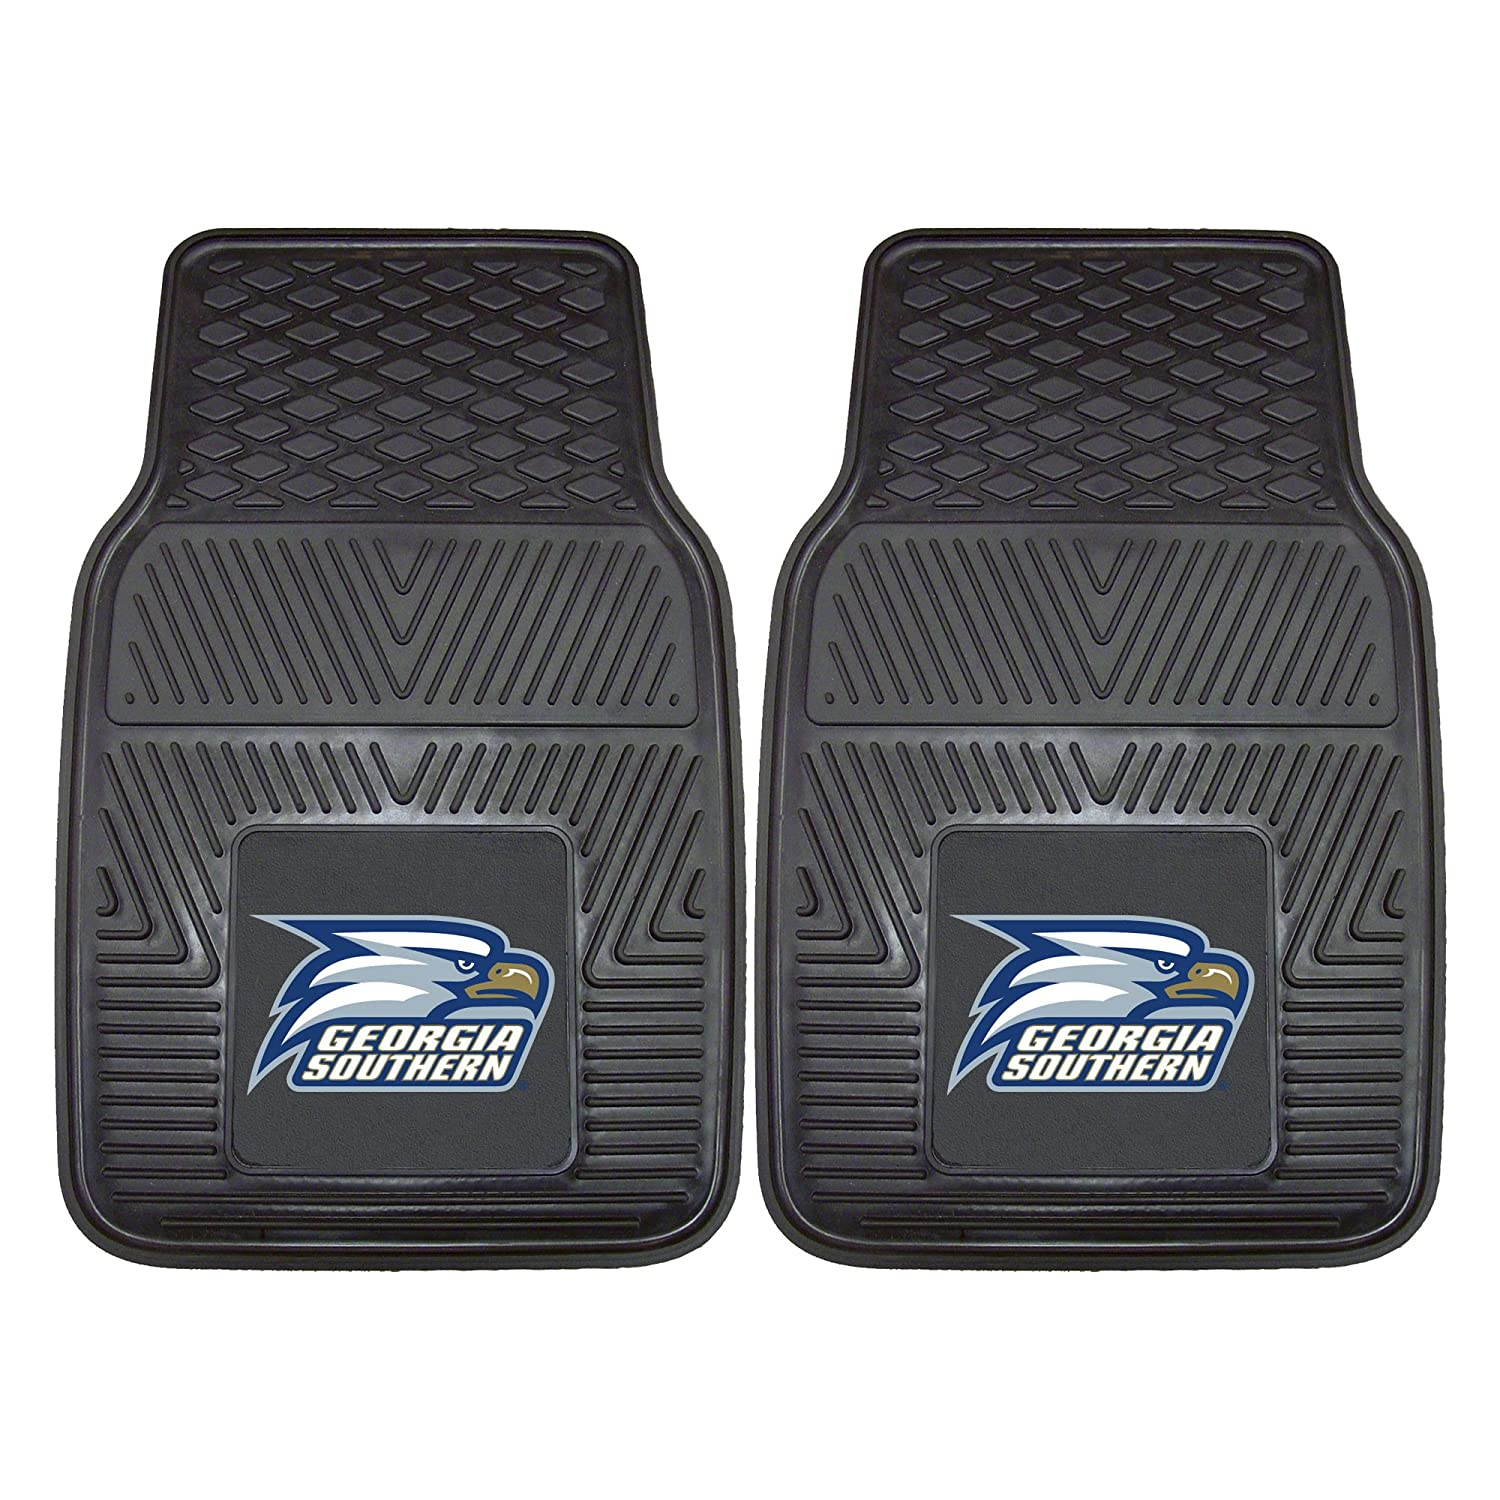 Fanmats 13924 Georgia Southern University Vinyl Car Mat Set, 2 Piece